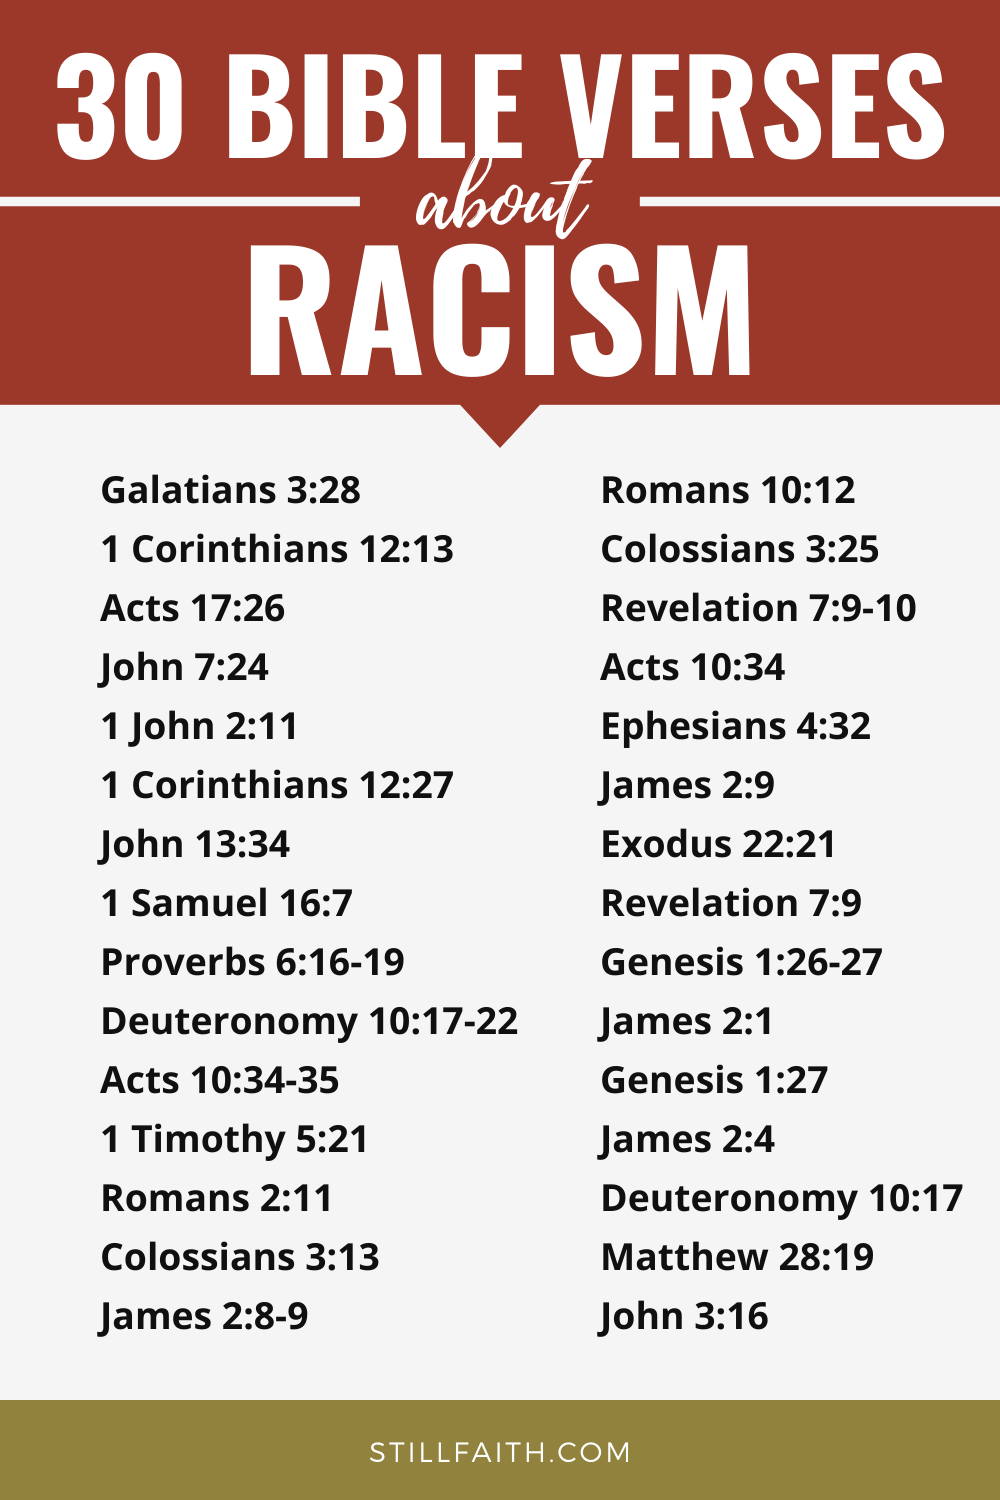 100 Bible Verses about Racism